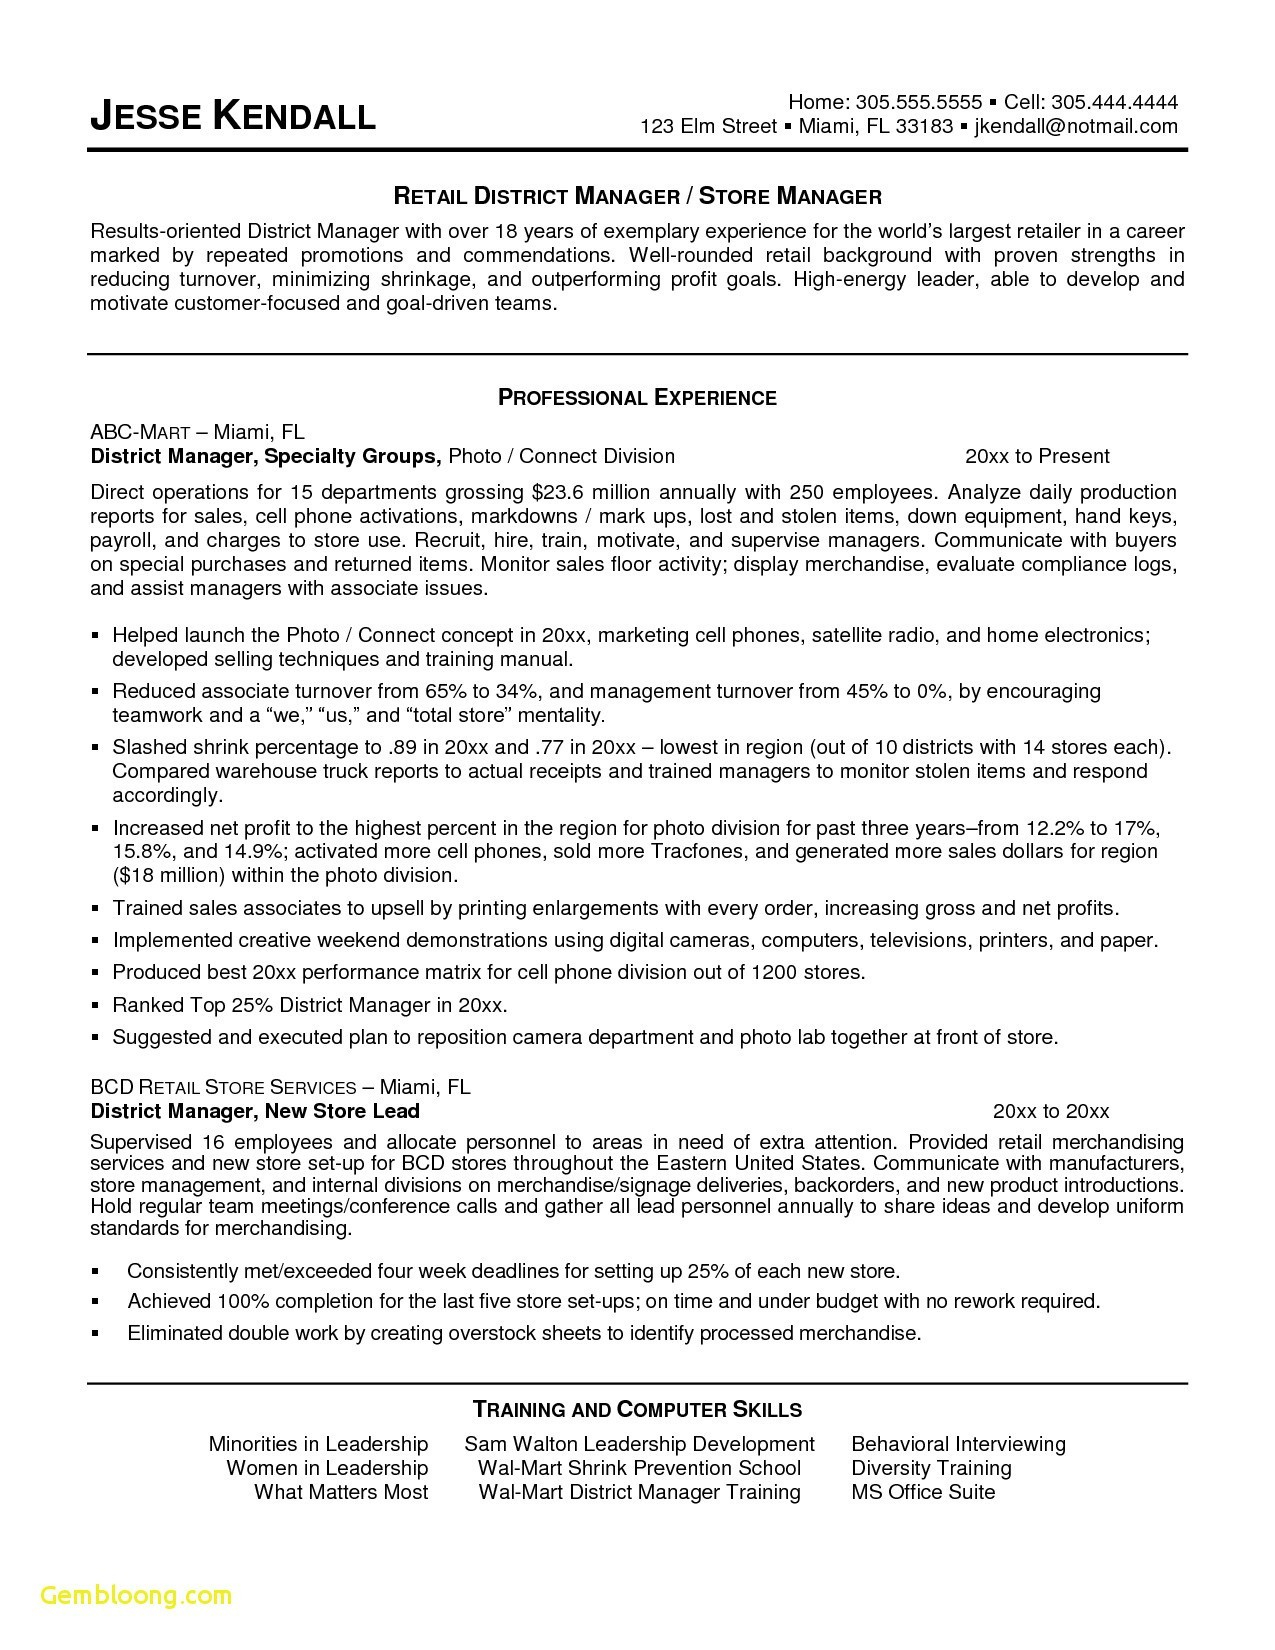 Office Manager Resume Template Free - Customer Service Manager Resume Unique Fresh Grapher Resume Sample